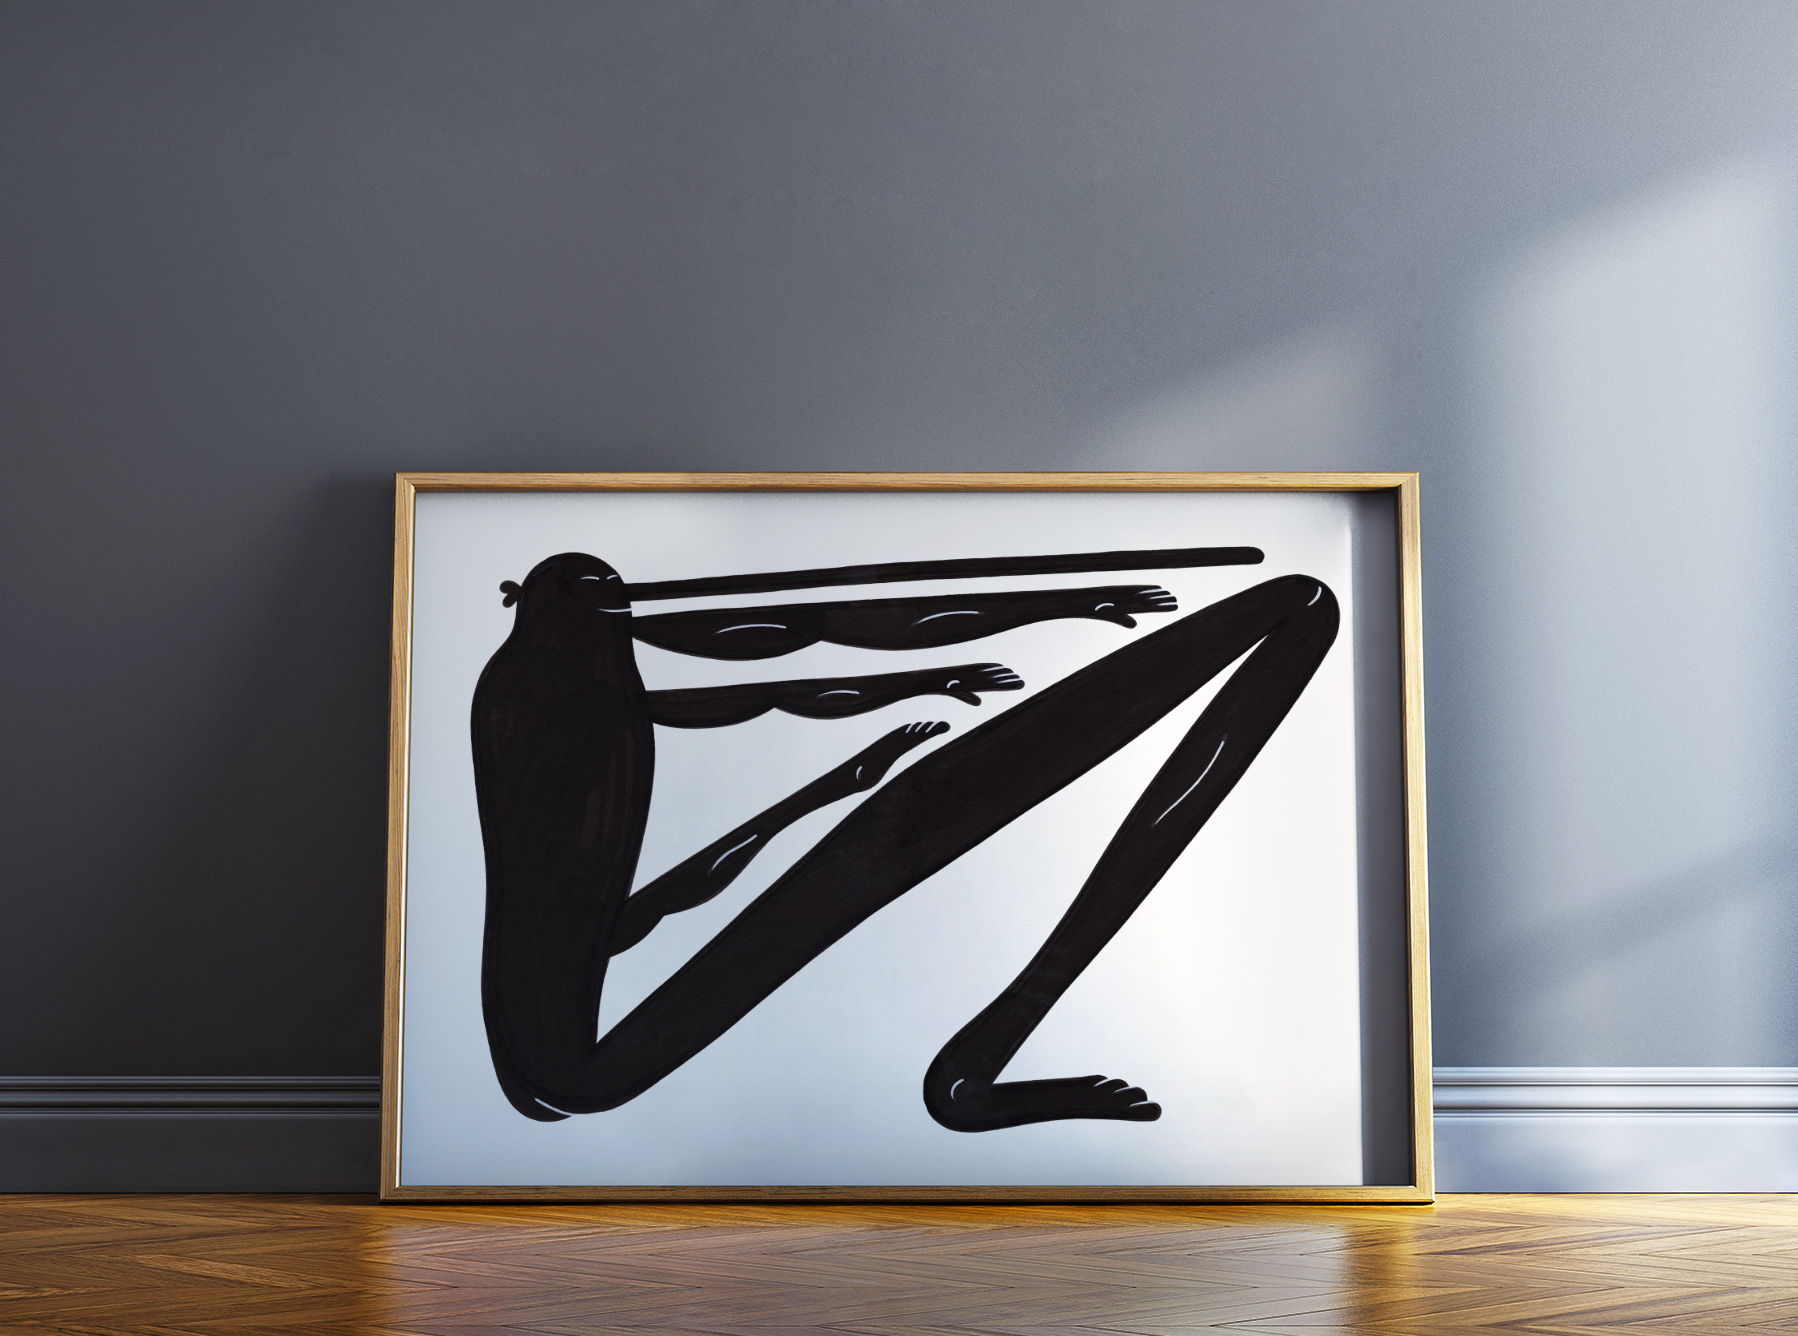 posters-prints, giclee-print, family-friendly, figurative, graphical, illustrative, minimalistic, cartoons, humor, movement, people, sport, black, white, ink, paper, amusing, black-and-white, contemporary-art, copenhagen, danish, decorative, design, interior, interior-design, modern, modern-art, nordic, posters, prints, scandinavien, Buy original high quality art. Paintings, drawings, limited edition prints & posters by talented artists.